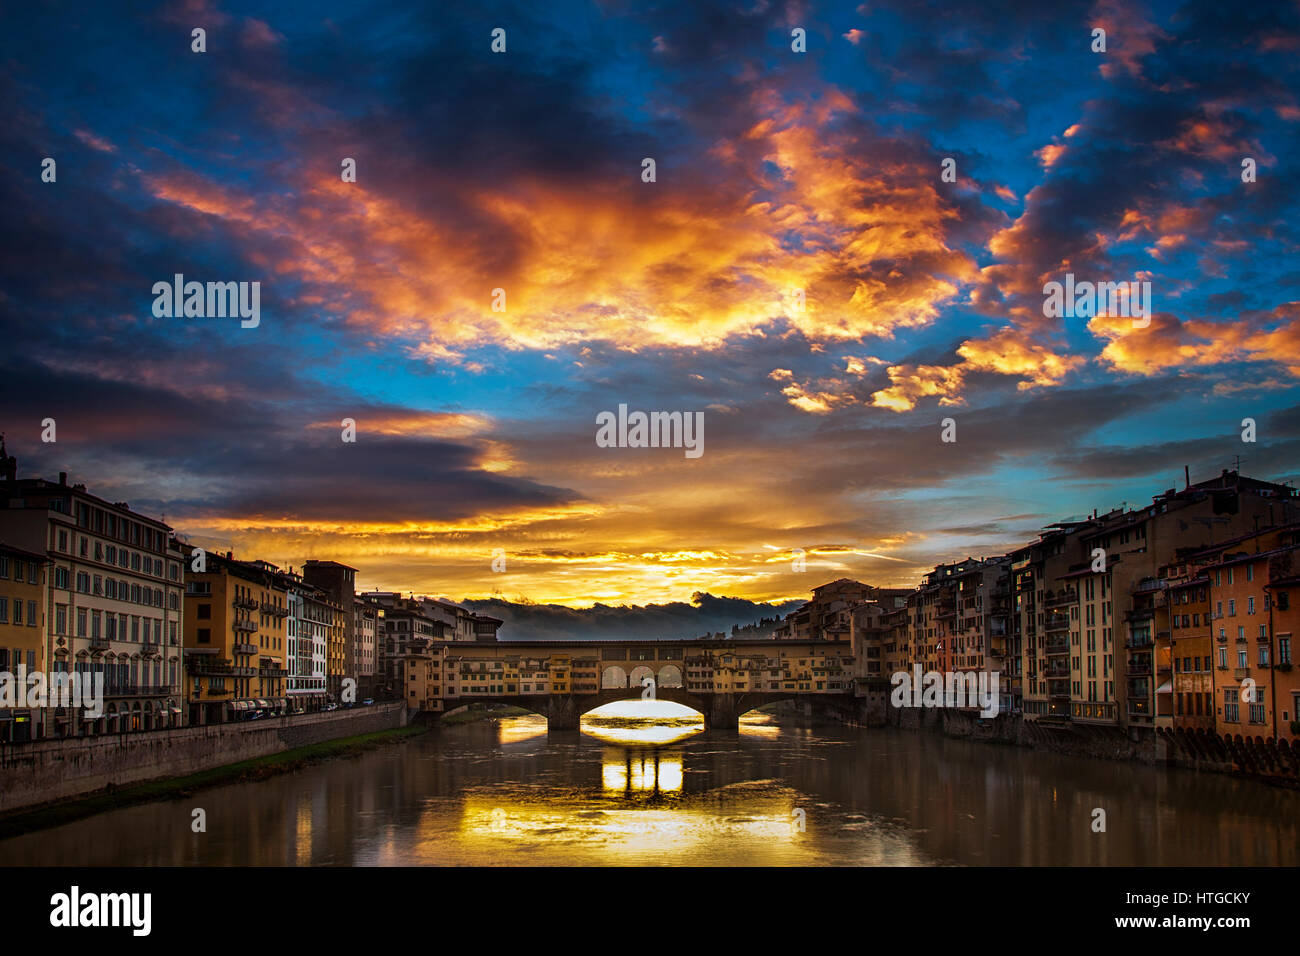 Clearing storm clouds at dawn create a dramatic sunrise over the Ponte Vecchio bridge in Florence, Italy - Stock Image